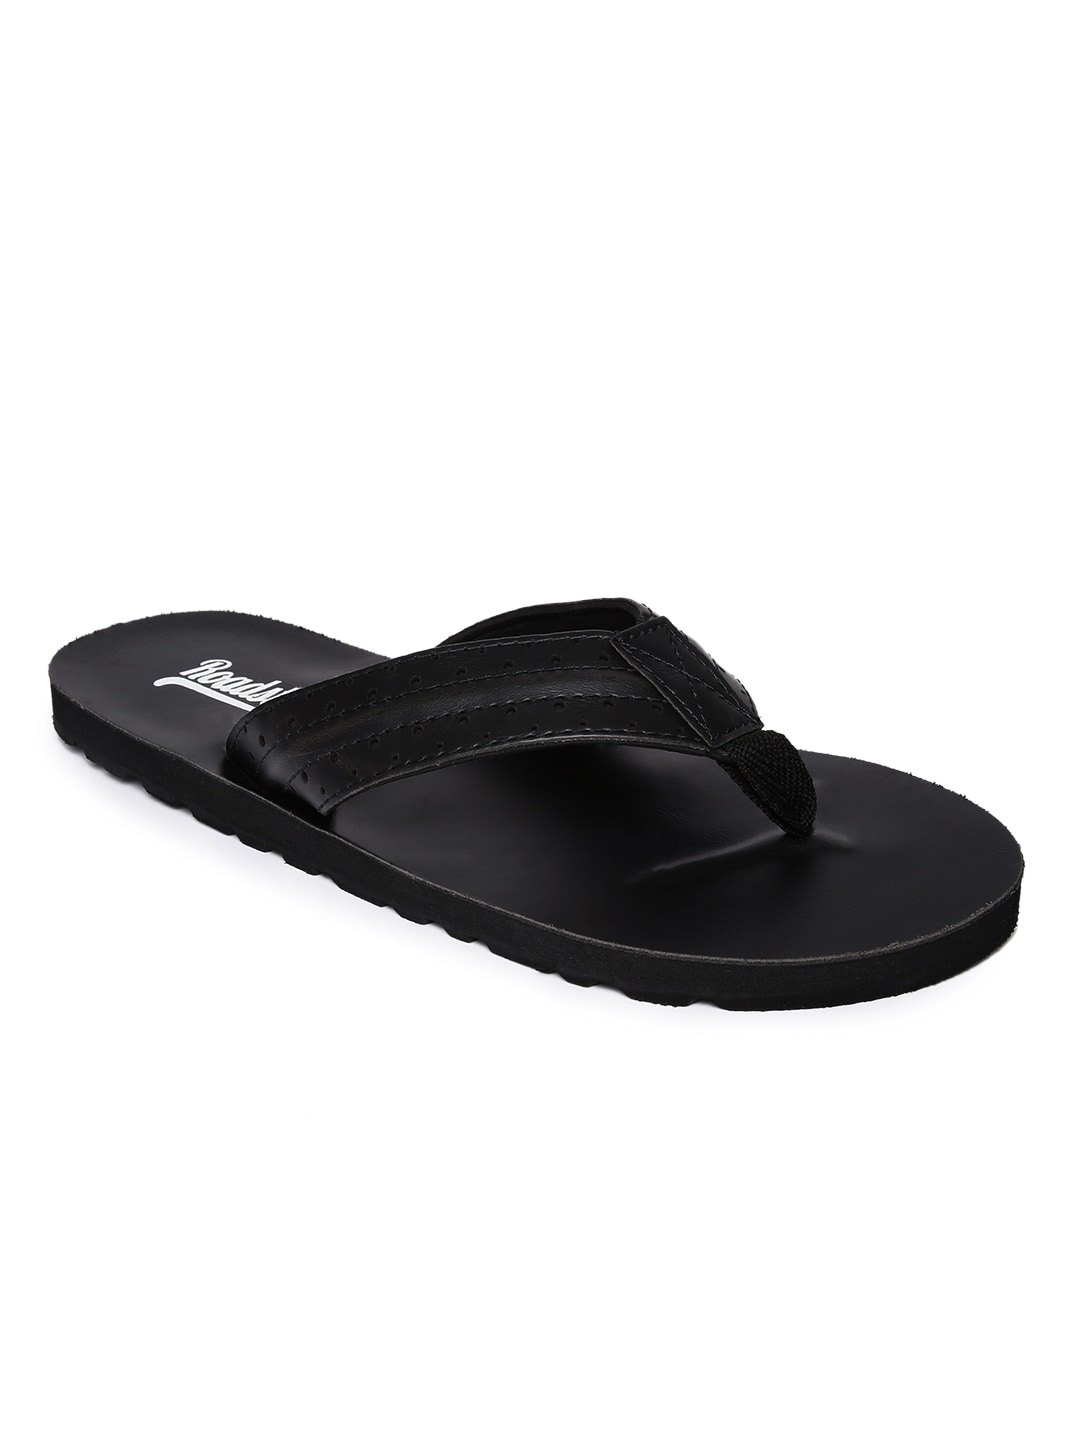 Roadster Men Black Solid Thong Flip-Flops image